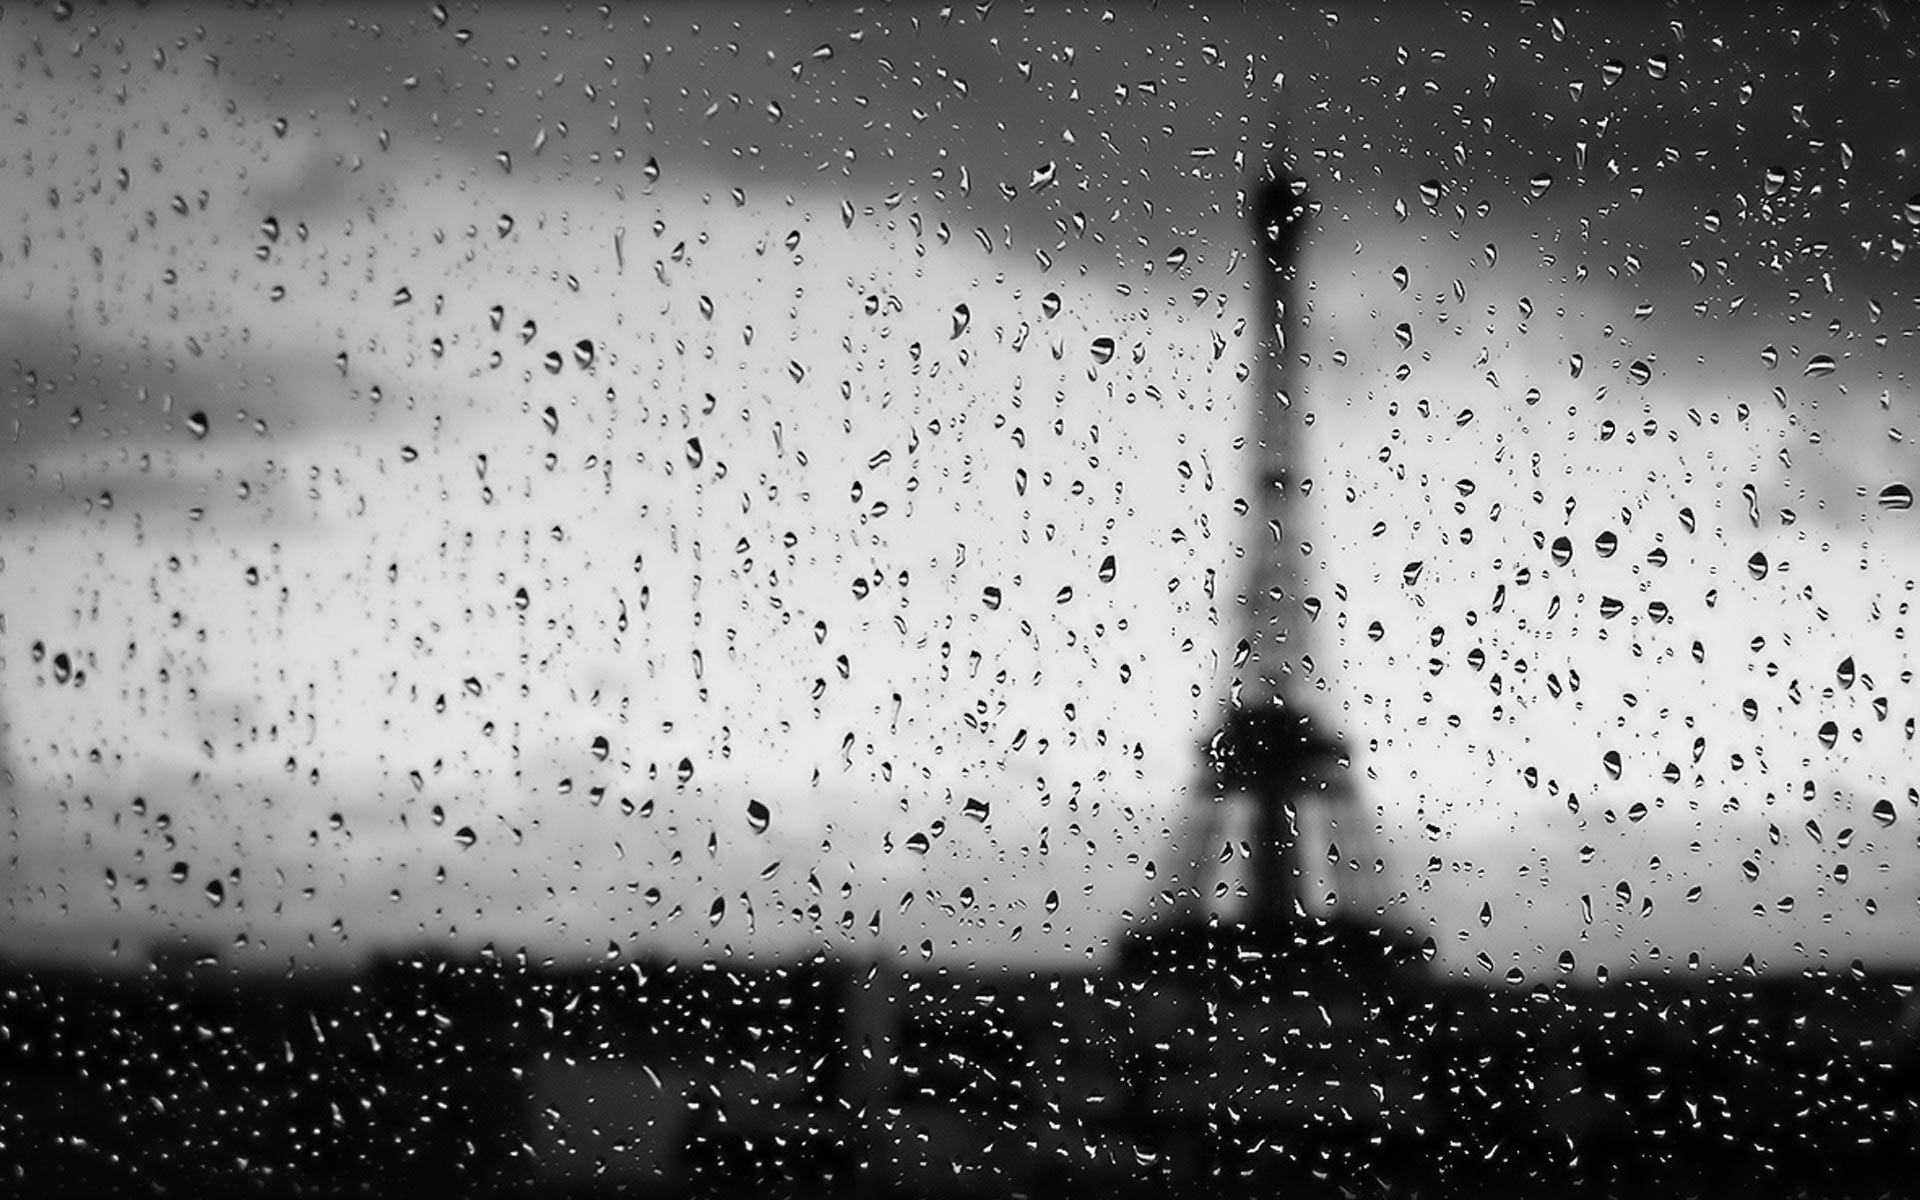 Rain Background HD Wallpaper Others Wallpapers 1920x1200